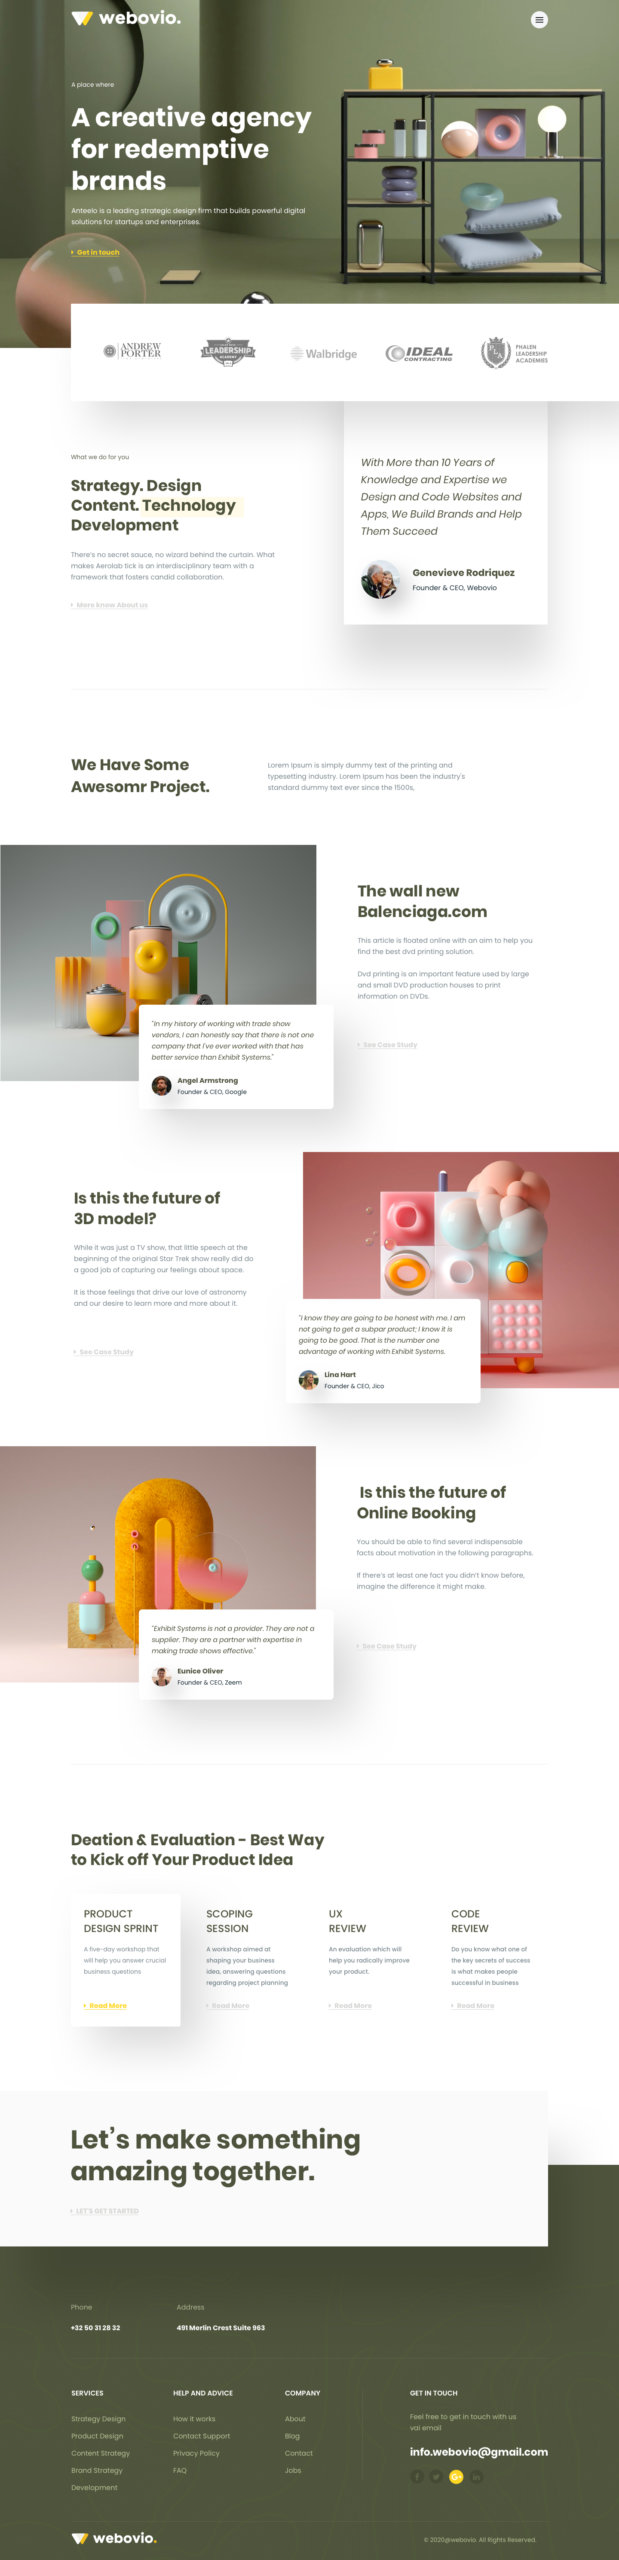 Webovio - Creative Agency Landing Page from UIGarage